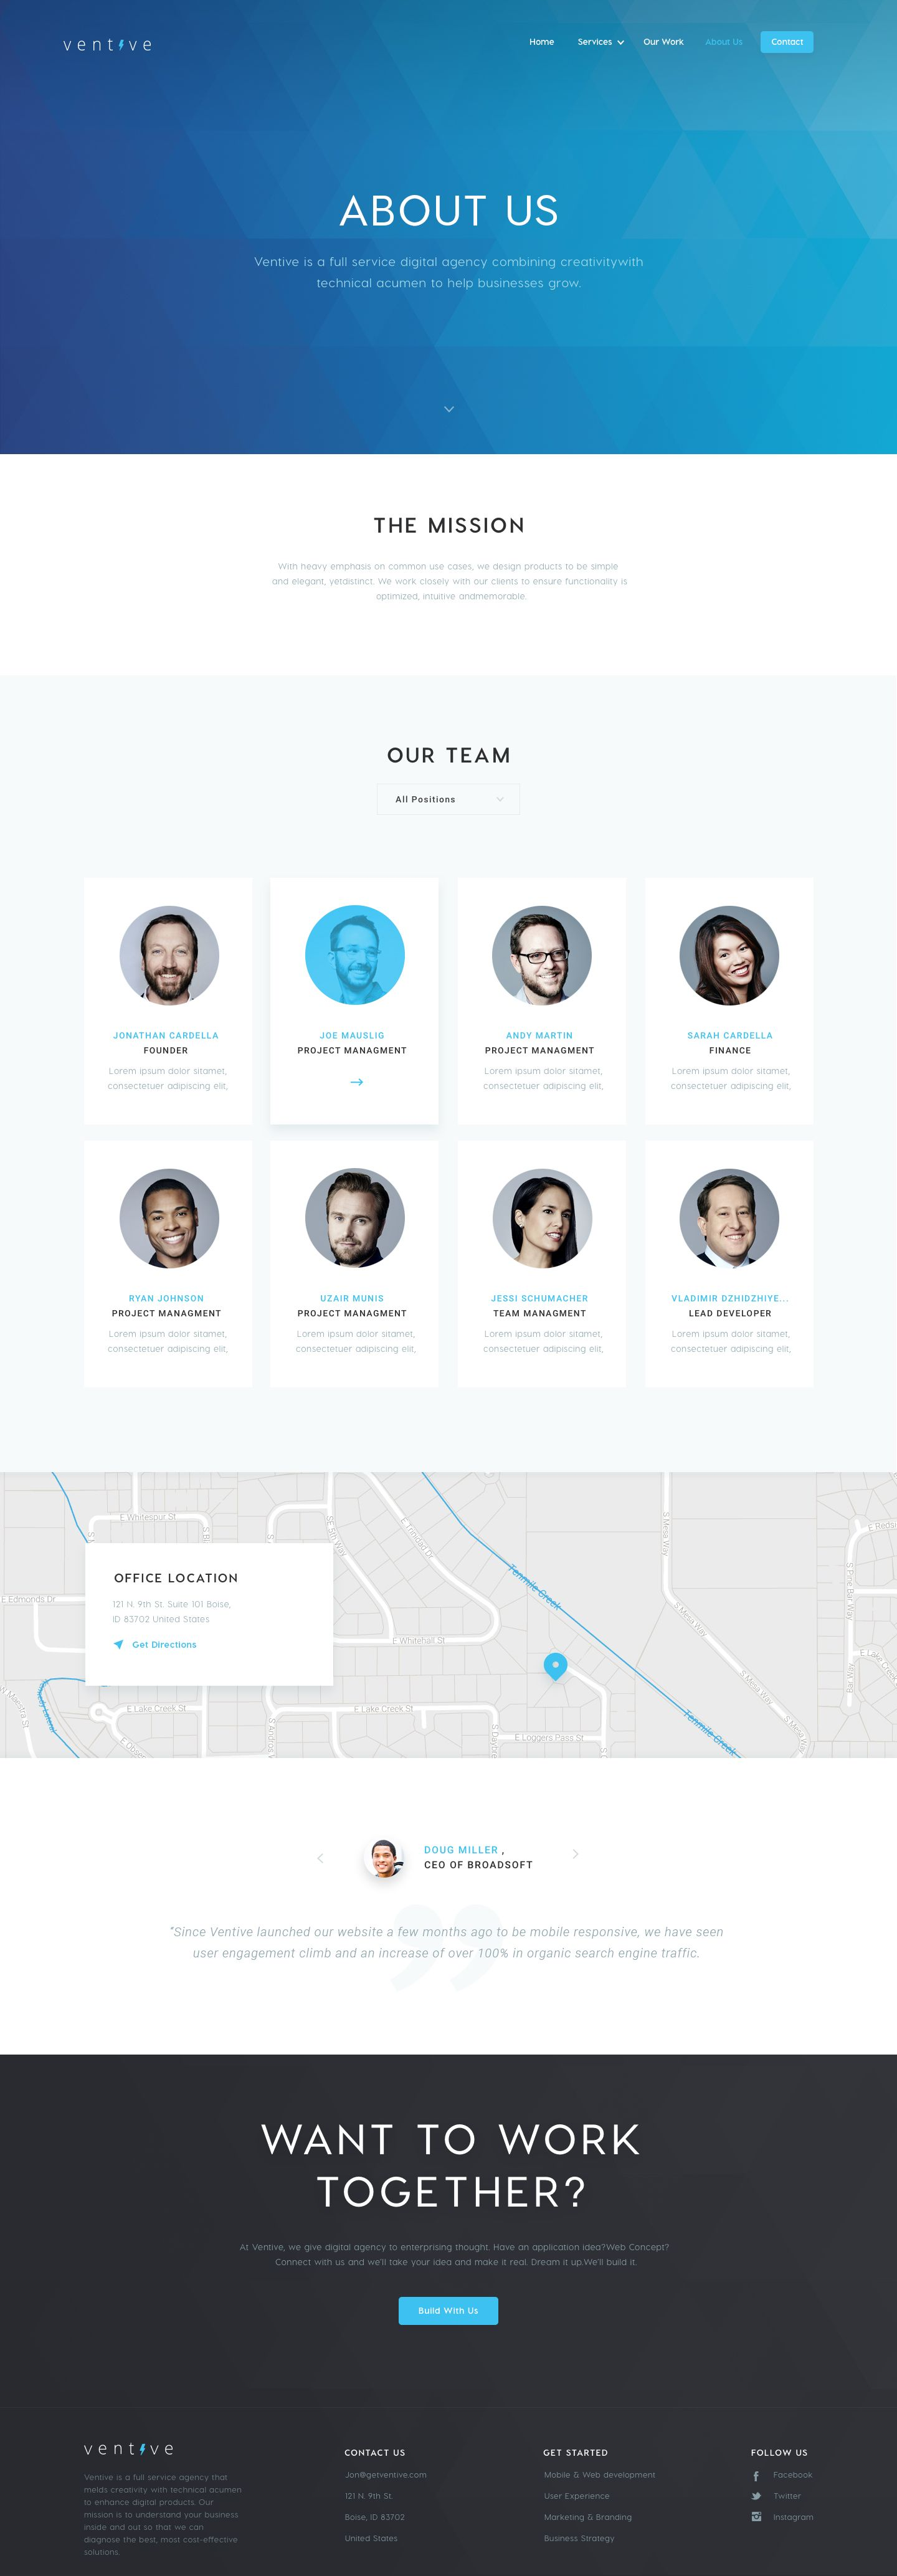 Ventive About Us About Us Page Design Website Design Inspiration Layout Web Layout Design